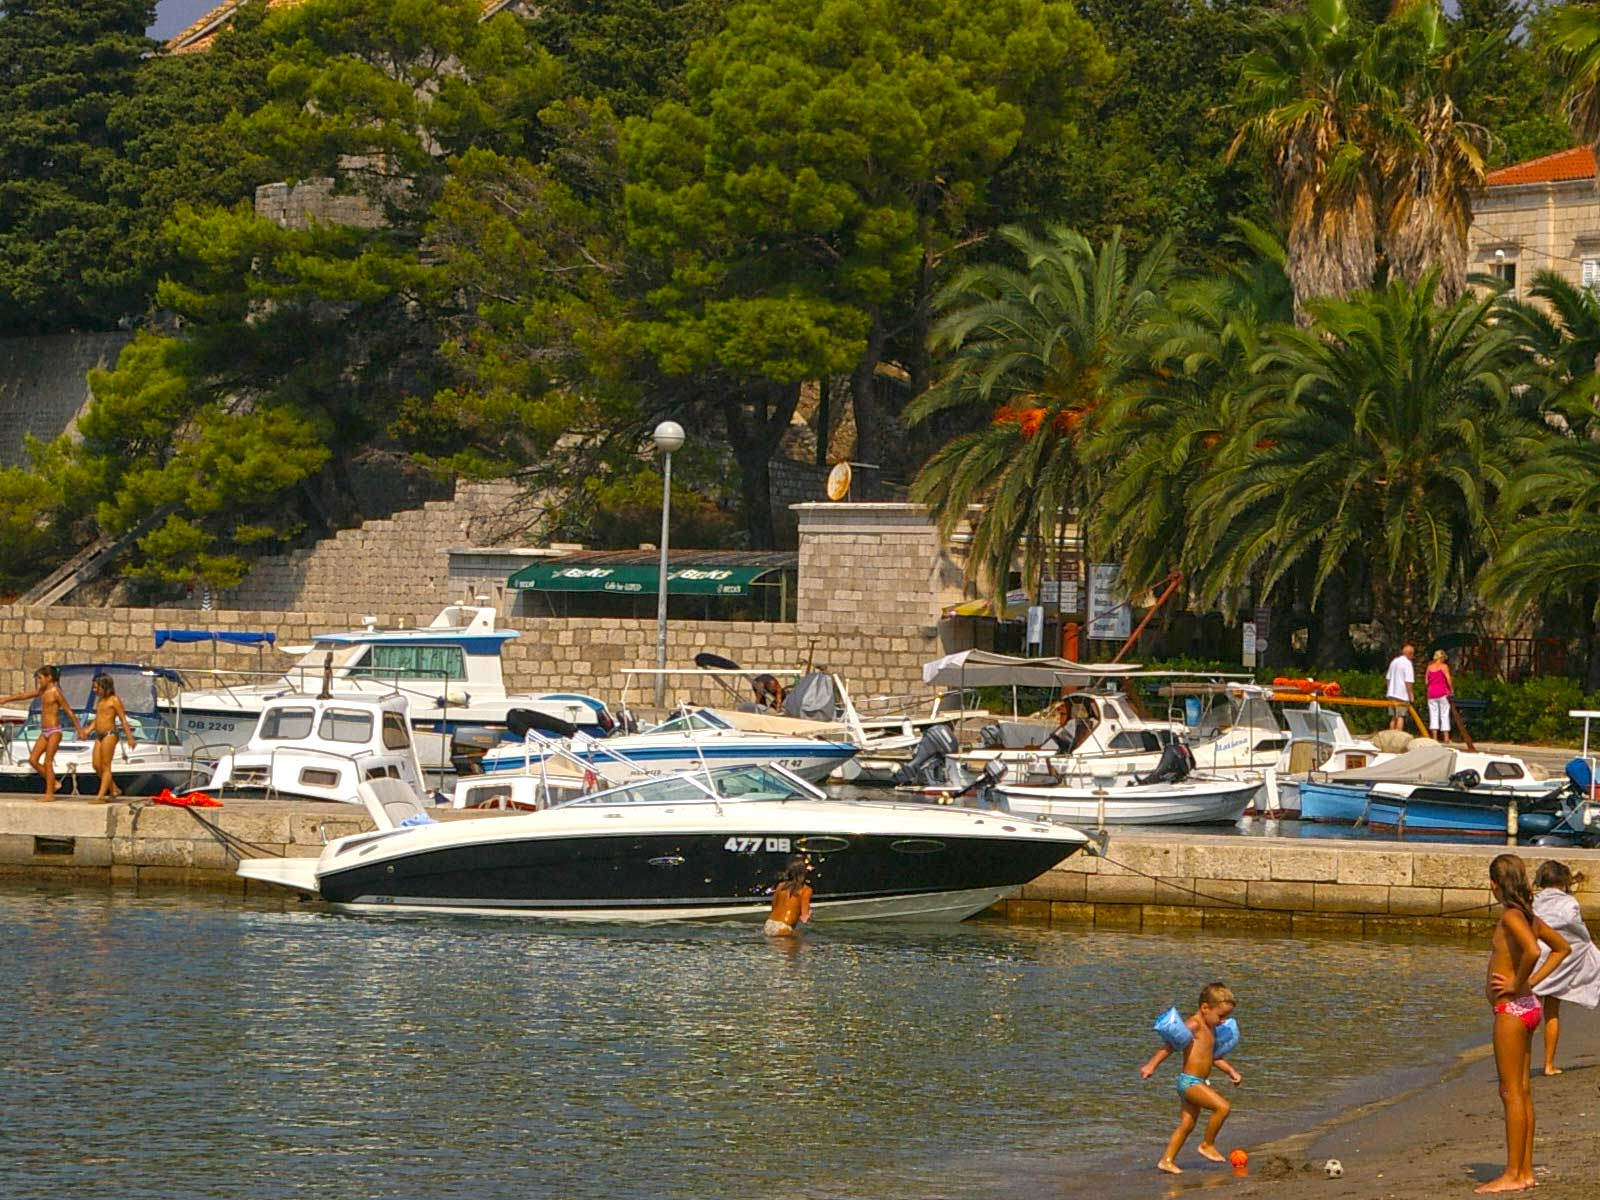 -images-excursions-elaphite-islands-speed-boat-excursion--a-elaphiti-boat-excursion-dubrovnik-islands-lopud-.jpg